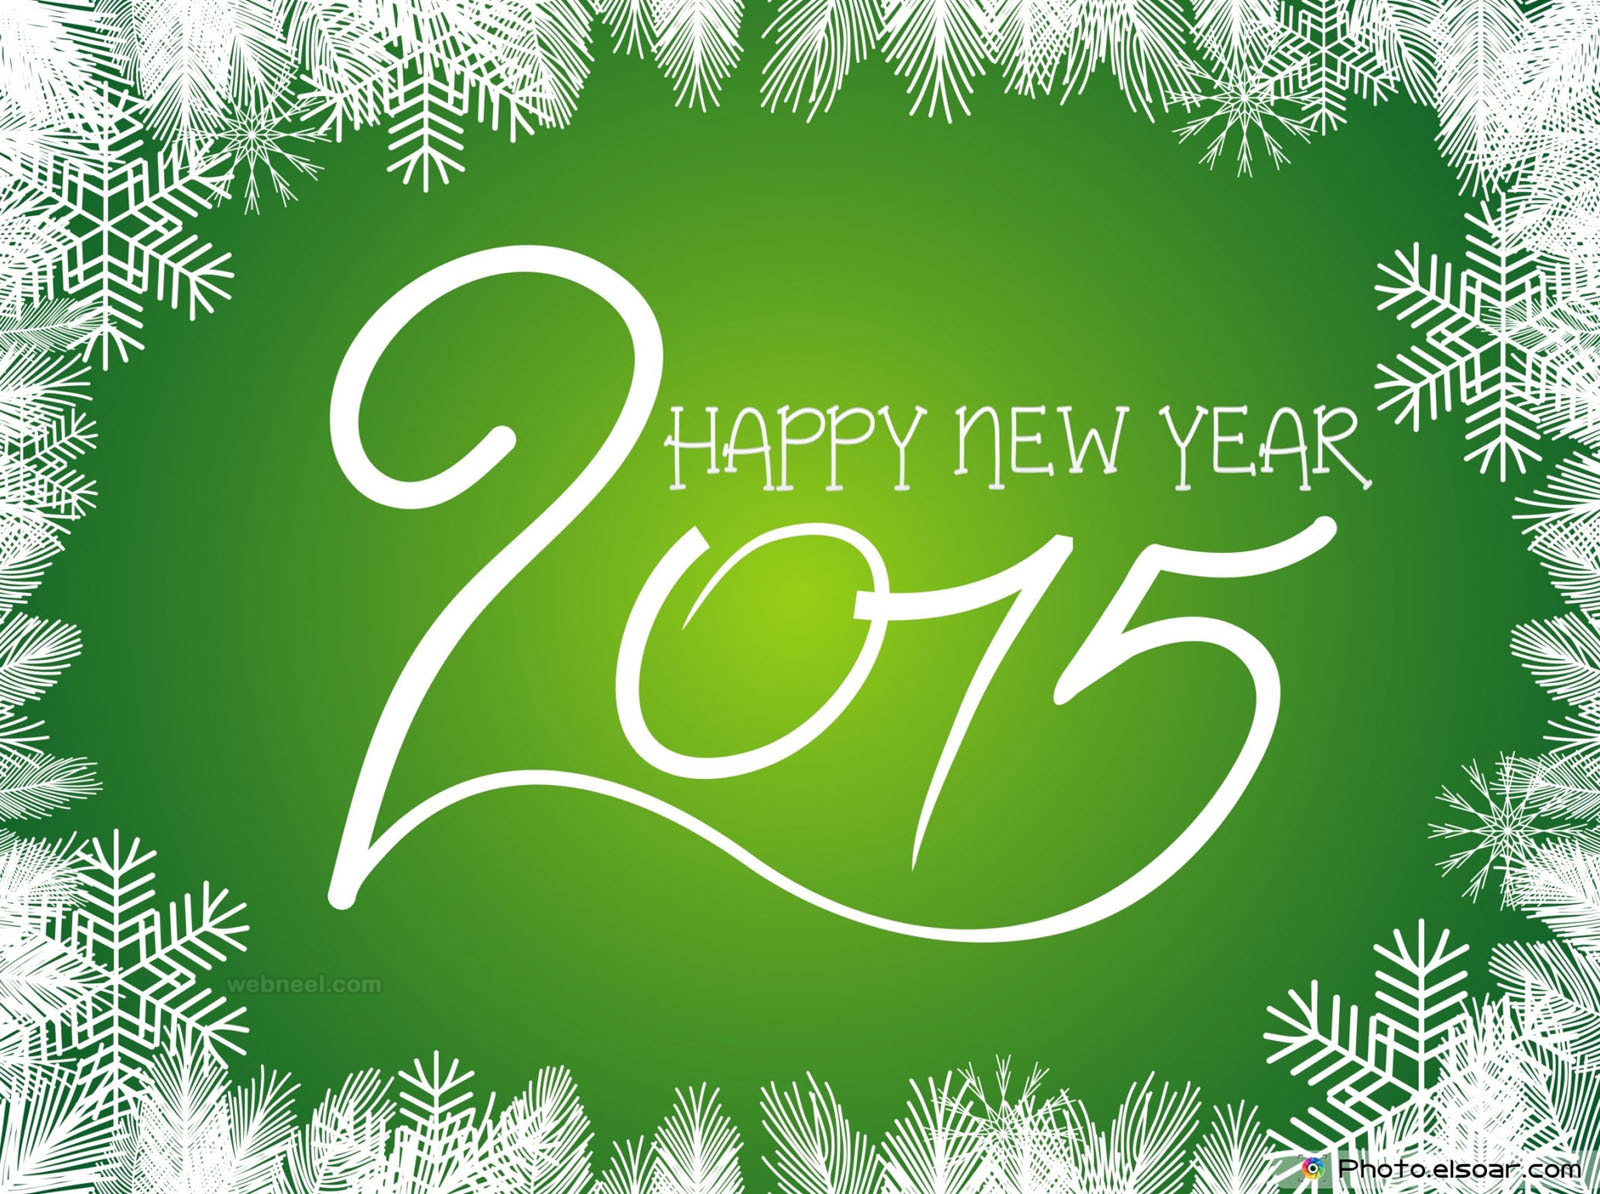 New Year Greeting Card Design 2015 17 - Full Image